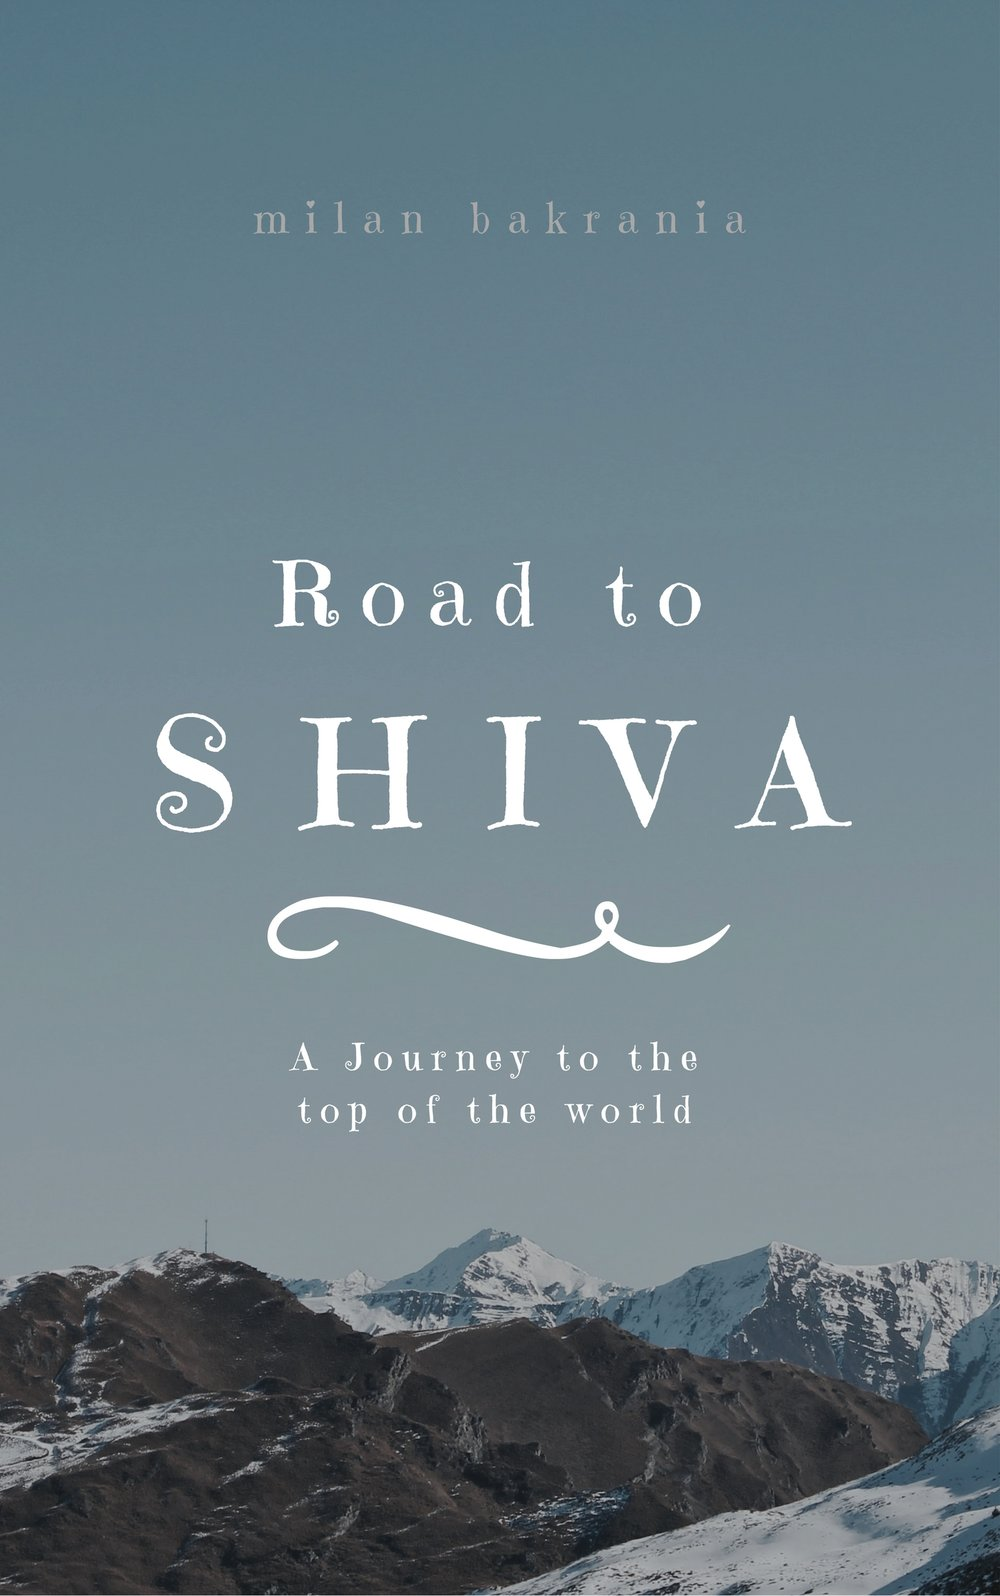 Road to Shiva - (2019) High in the Himalayas, an unknown narrator embarks on a journey to the sacred home of the mysterious Shiva.Told in the form of a travelogue, the protagonist comes to life on one of the most remote regions on earth.